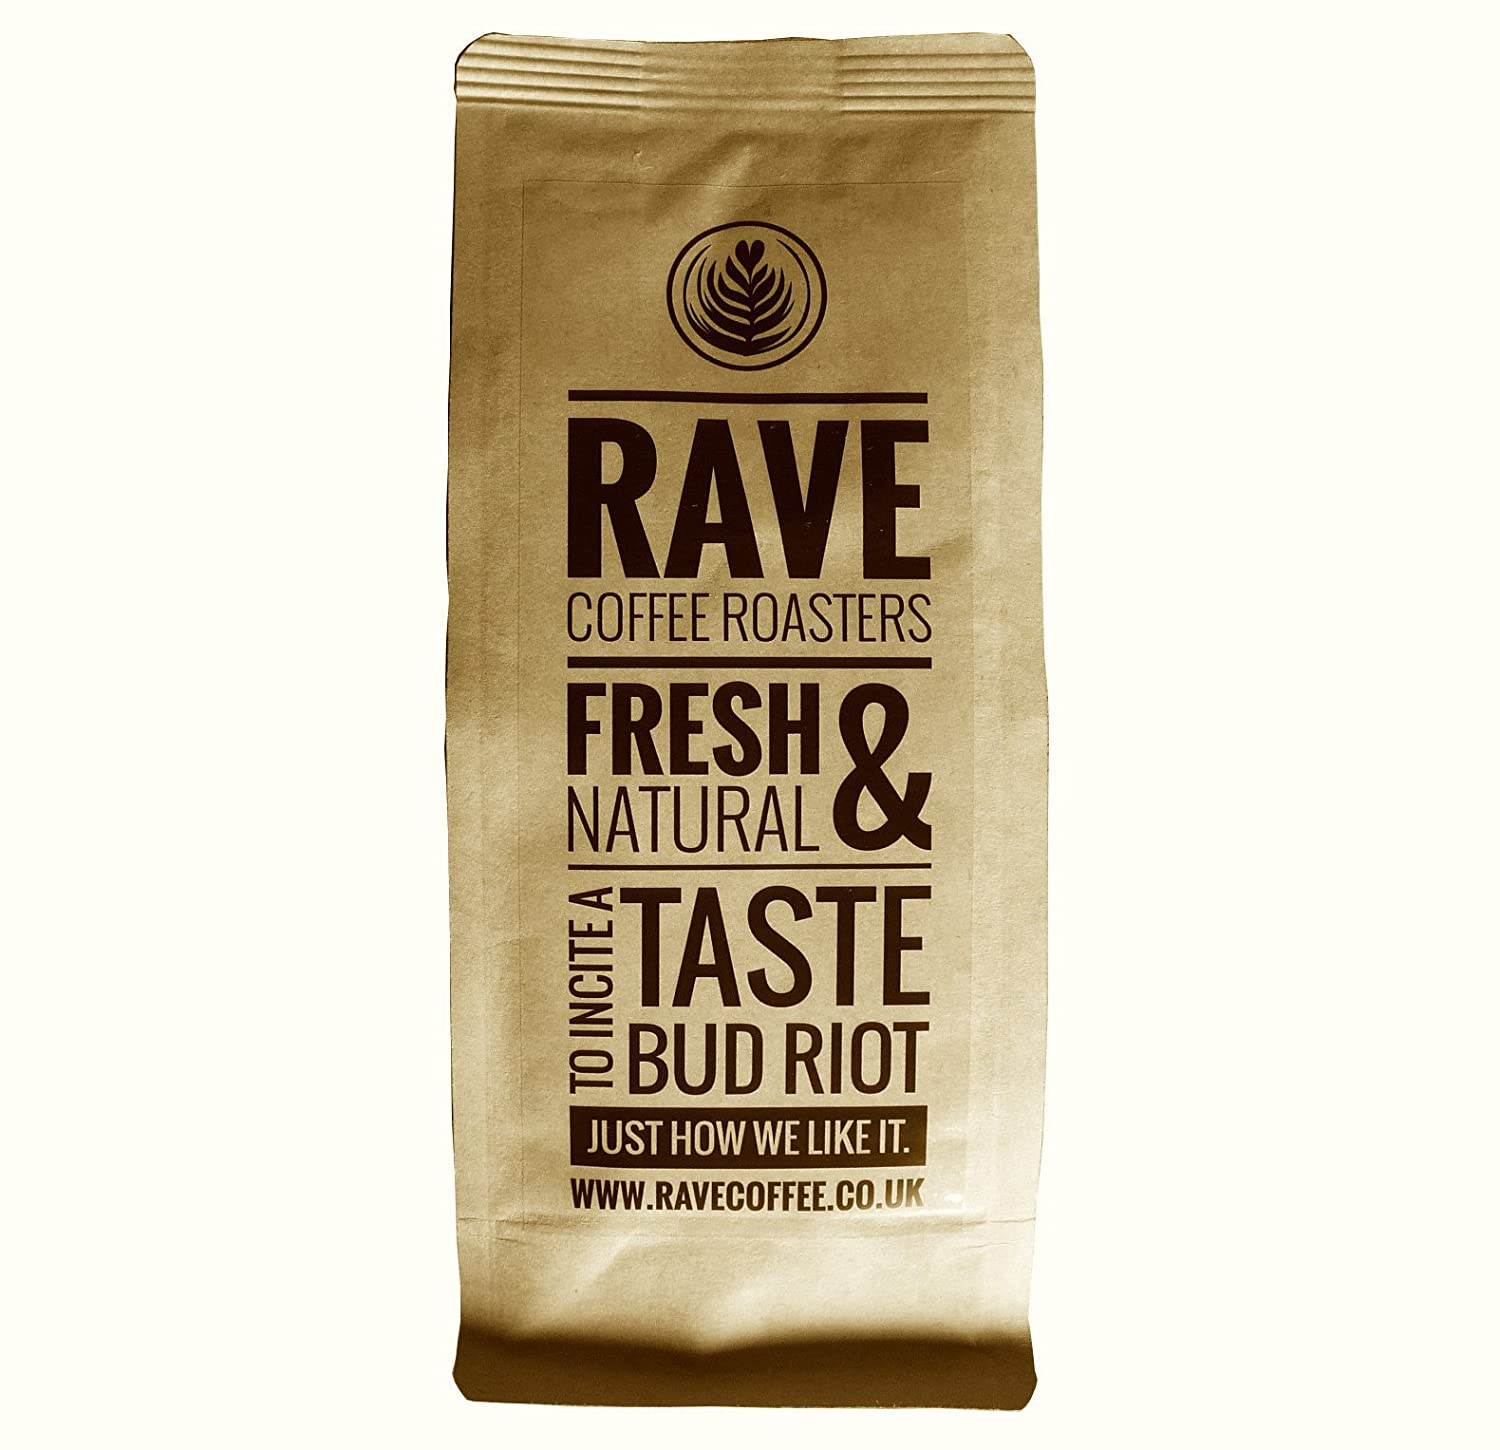 Rave Coffee - Sumatra Mandheling - Green Coffee Beans for Home Roasting -  500g  Amazon.co.uk  Grocery 69dc02f214